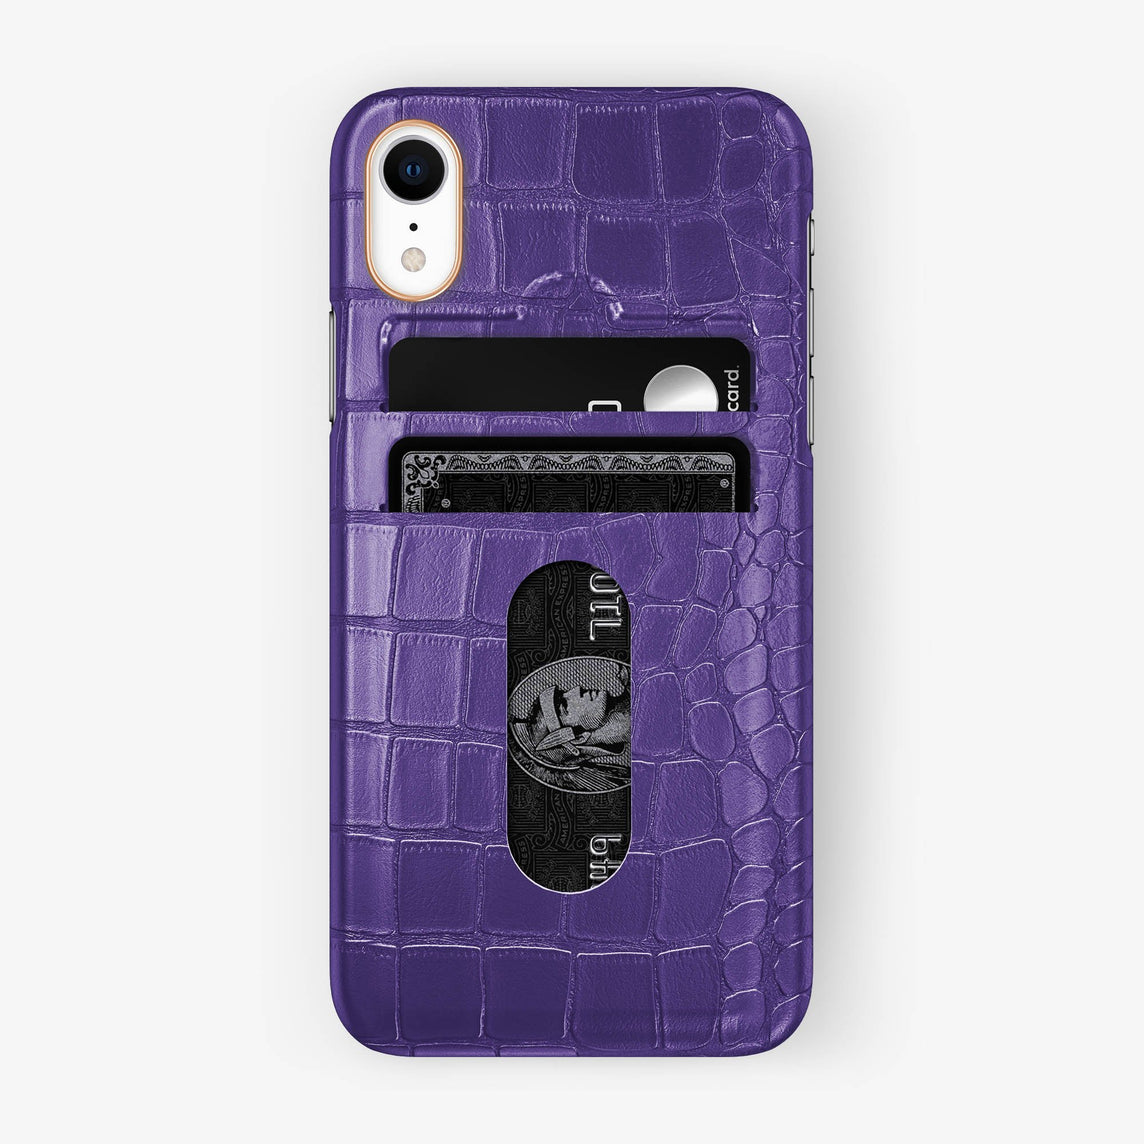 Alligator [iPhone Card Holder Case] [model:iphone-xr-case] [colour:purple] [finishing:rose-gold]